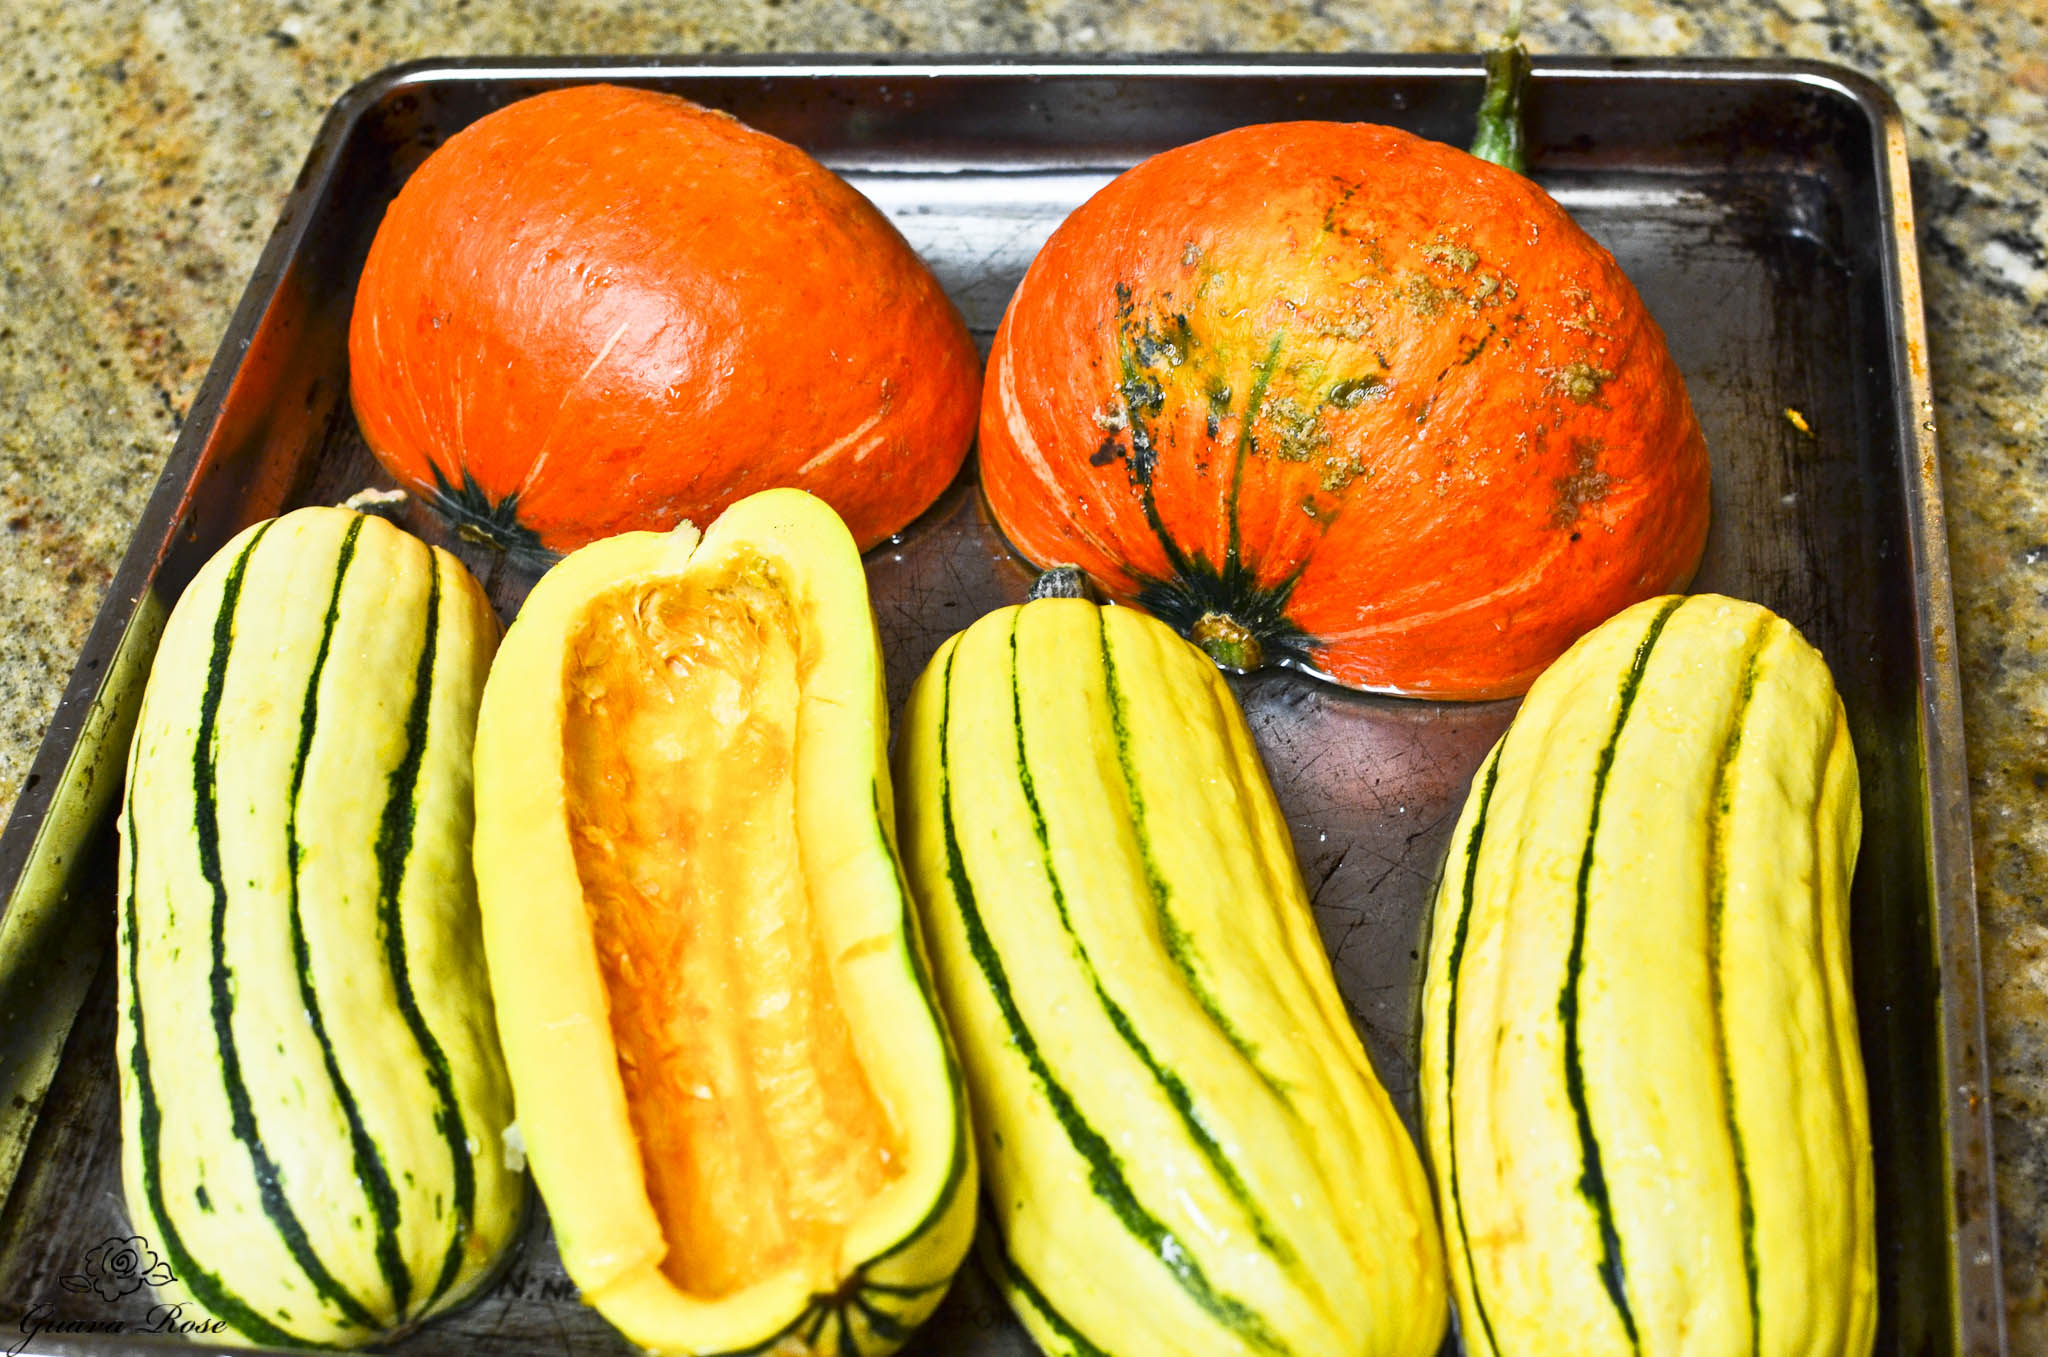 Cut and cleaned kabocha and delicata